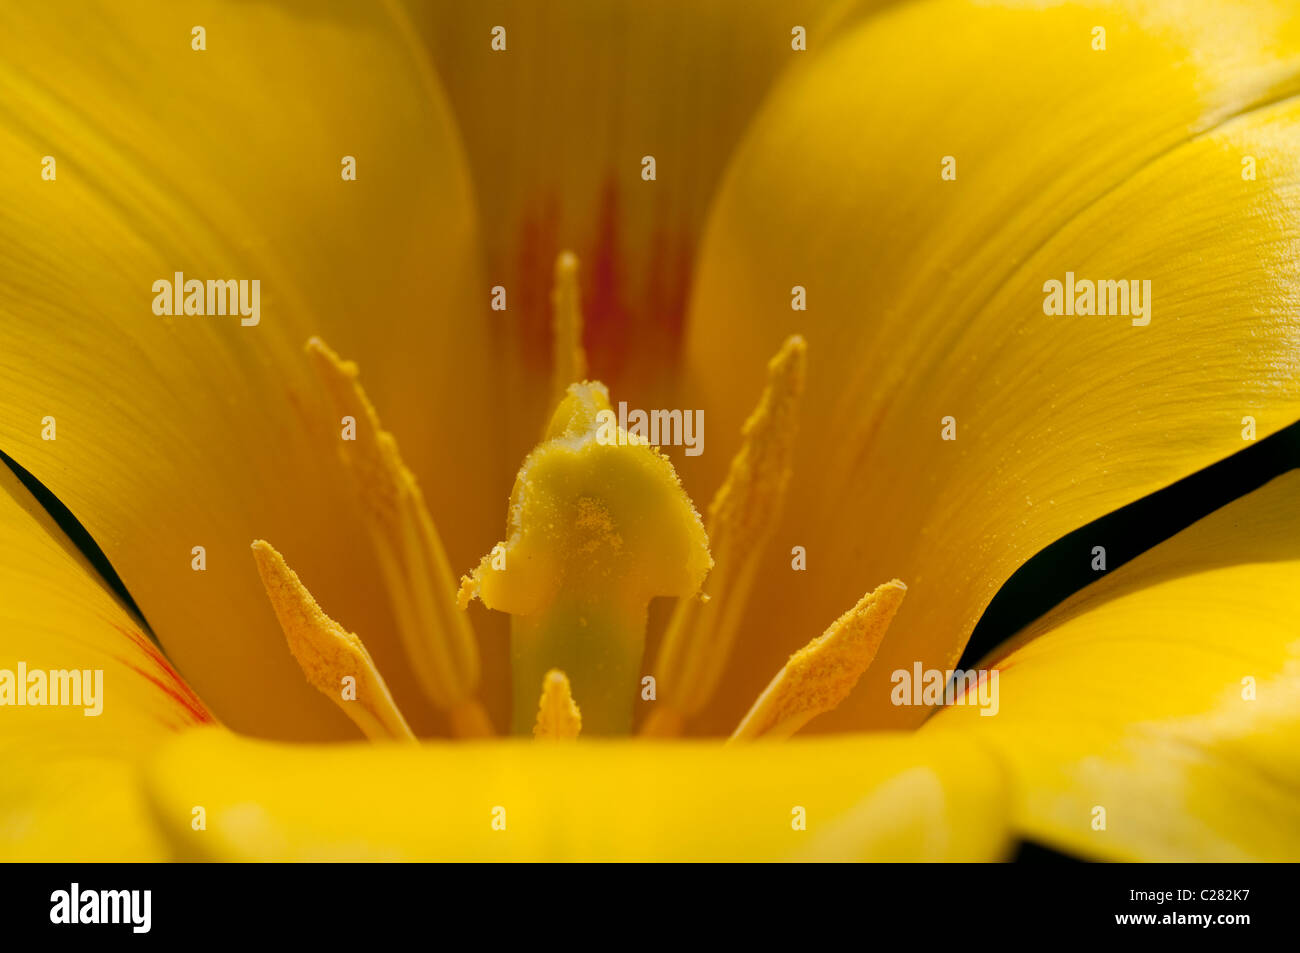 Tulip blossom with yellow stamen, close up - Stock Image